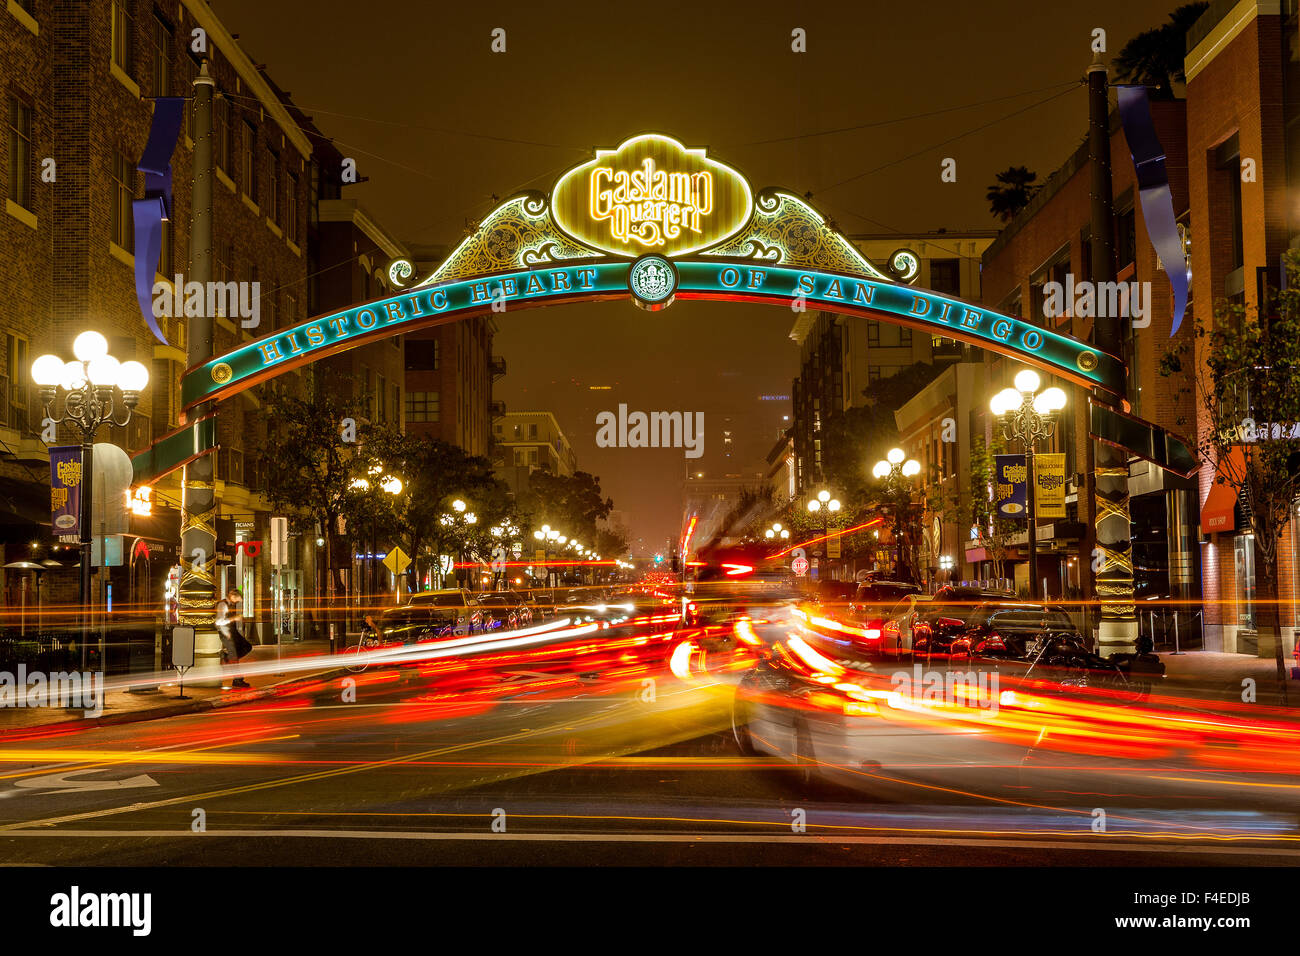 The Gaslamp Quarter In Downtown San Diego, CA